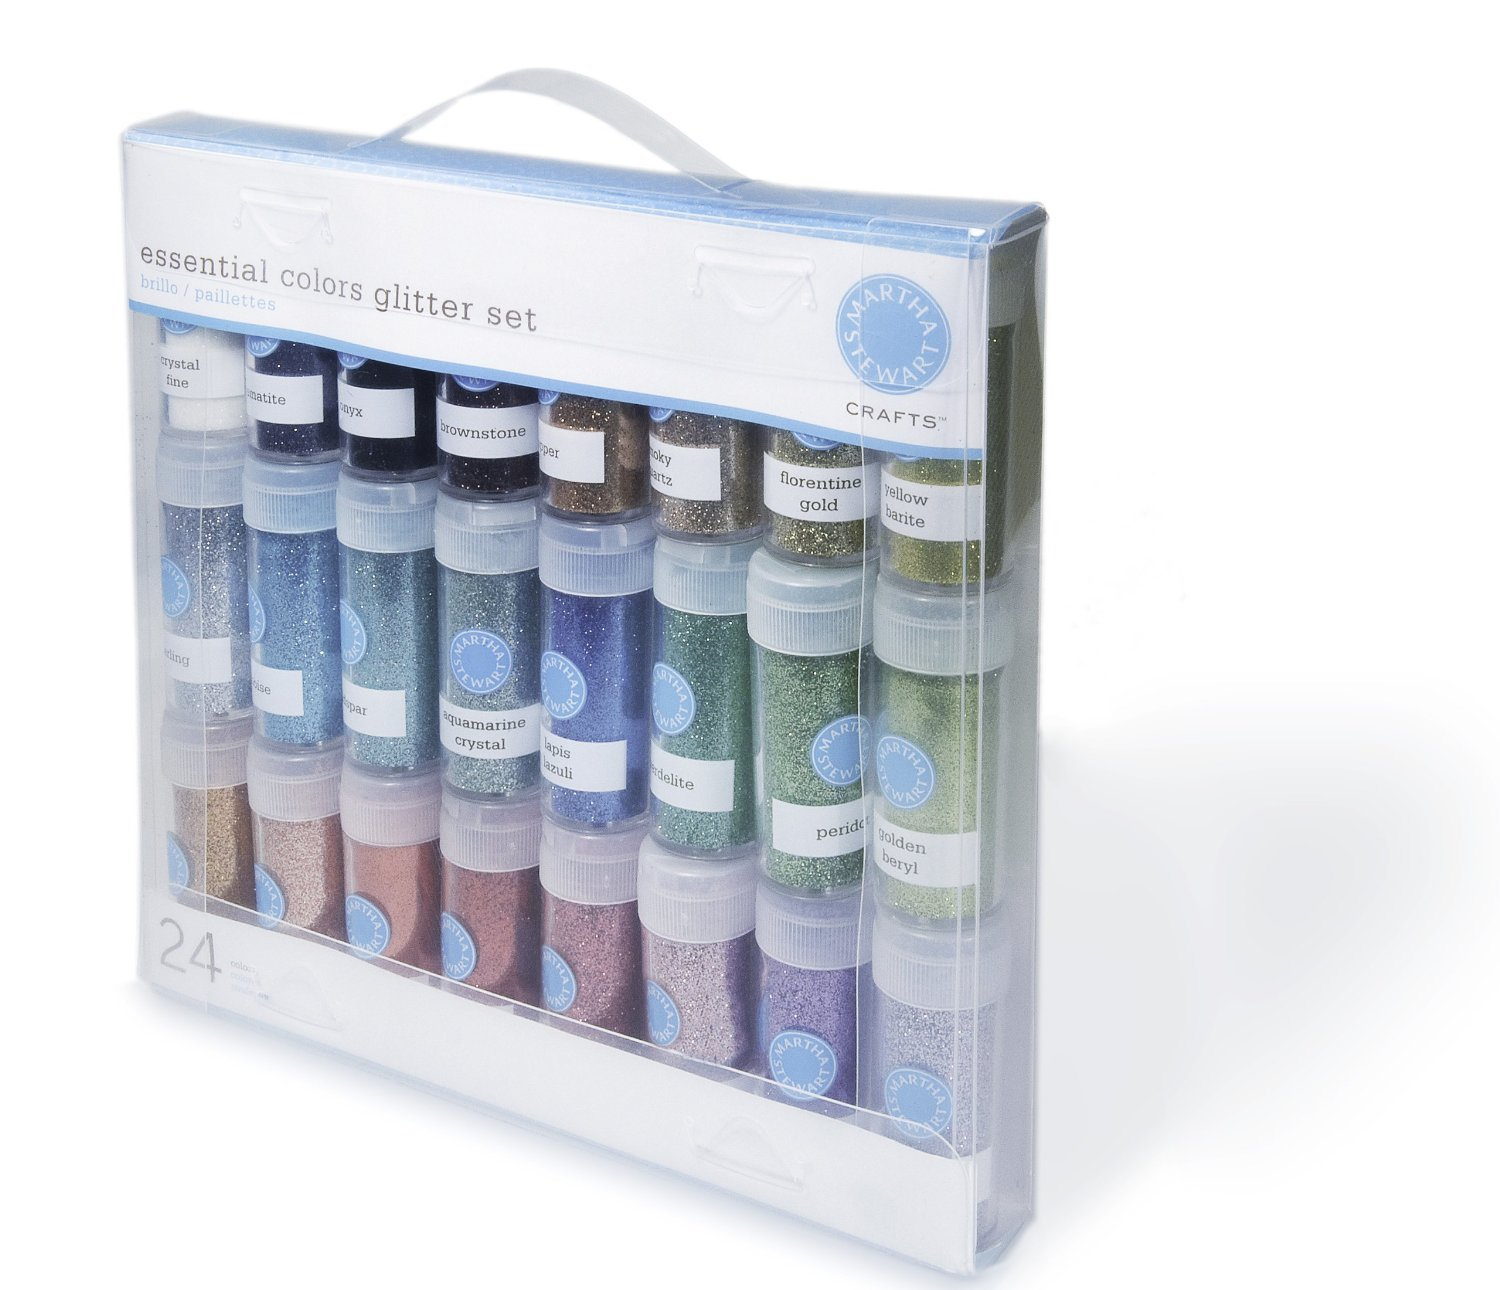 glitter - the perfect gift for crafters